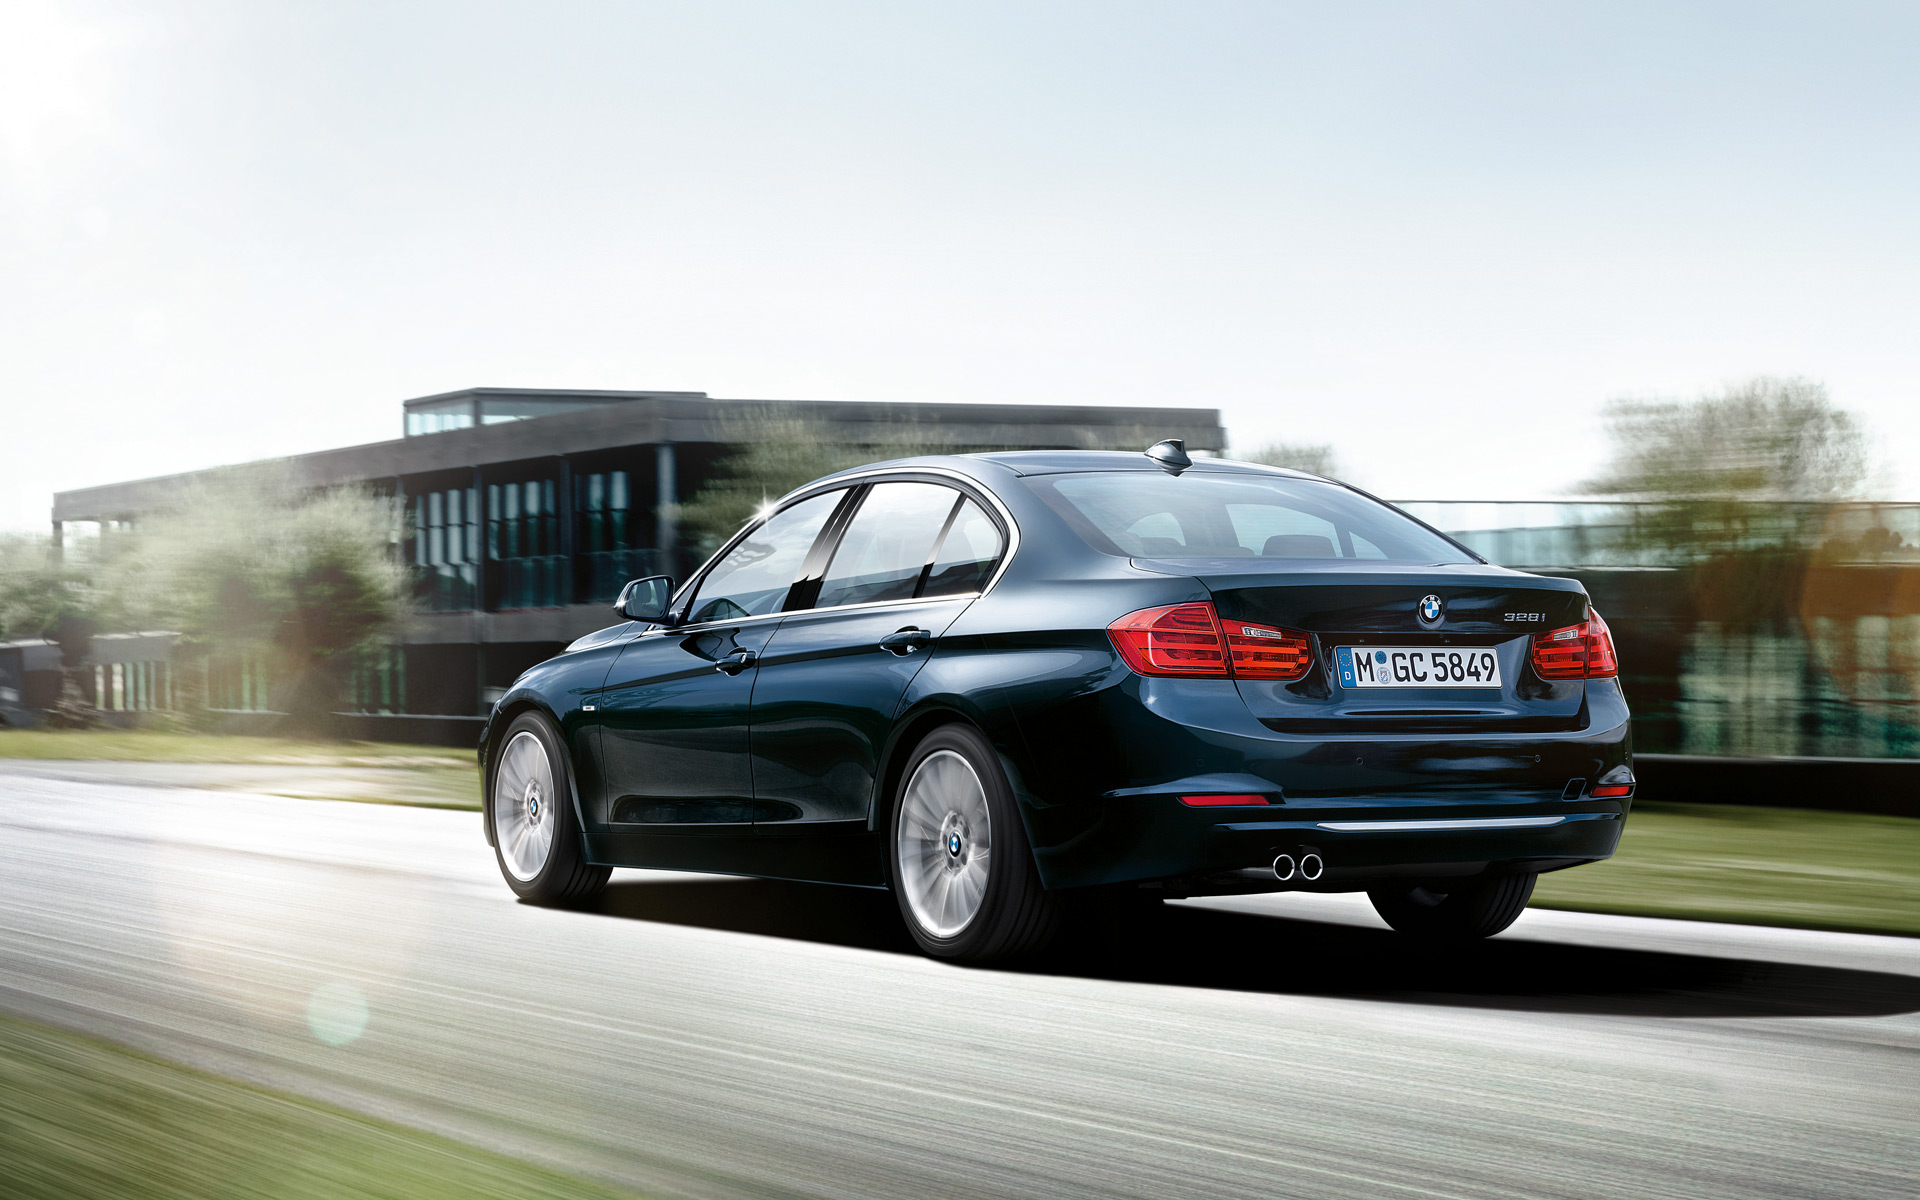 Hd Wallpapers Of Bmw 3 Series X Auto